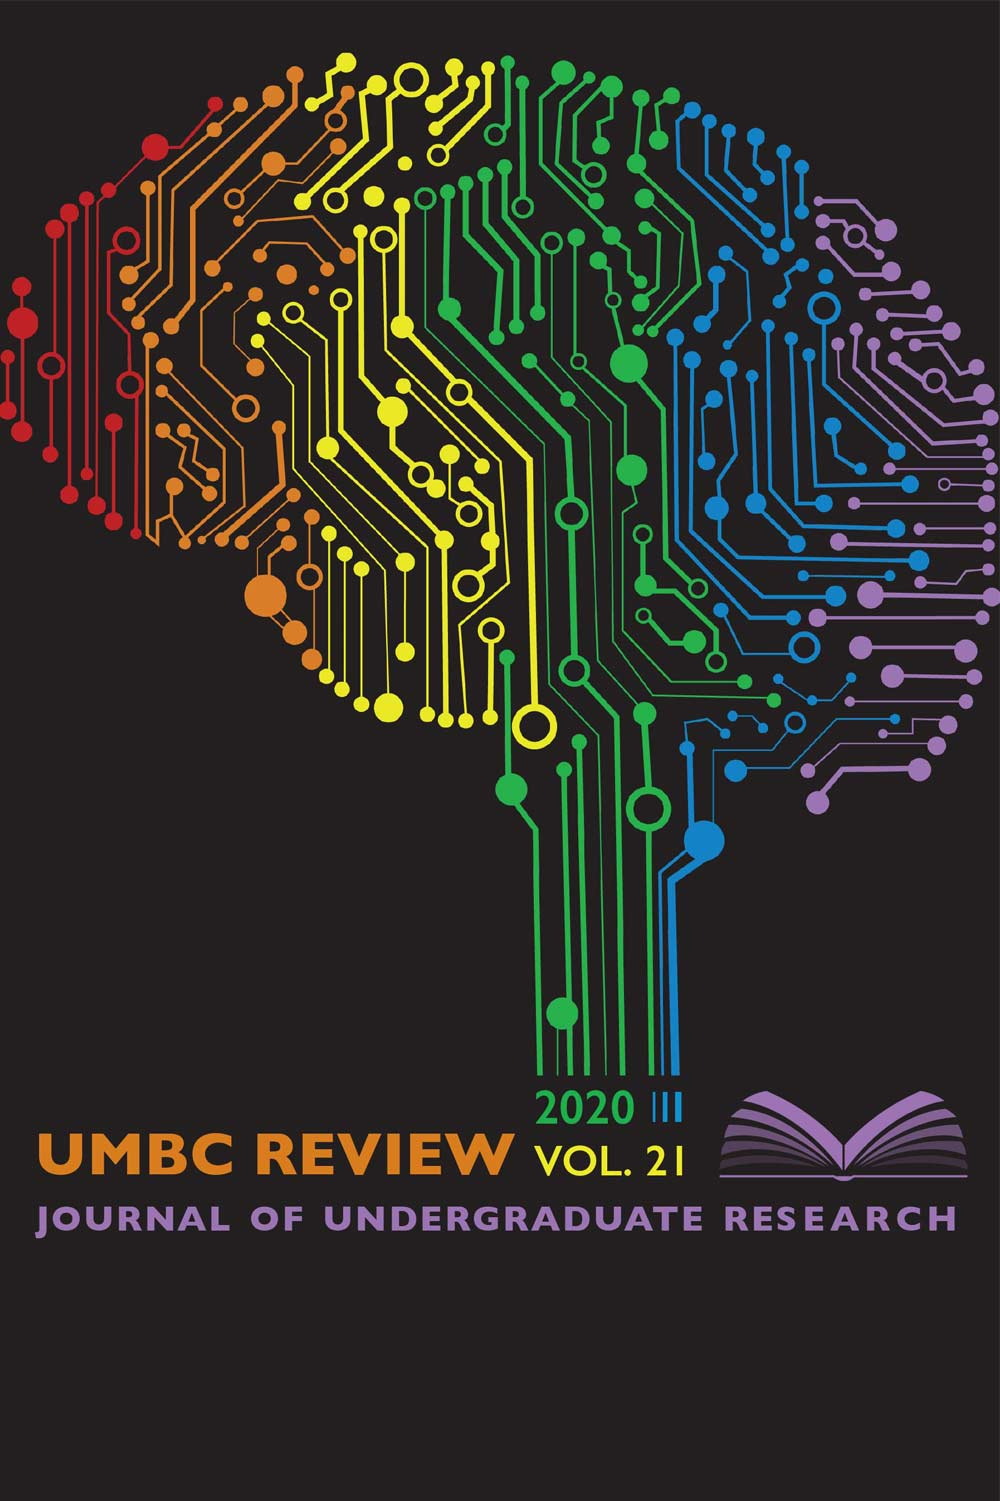 UMBC Review 2020 cover